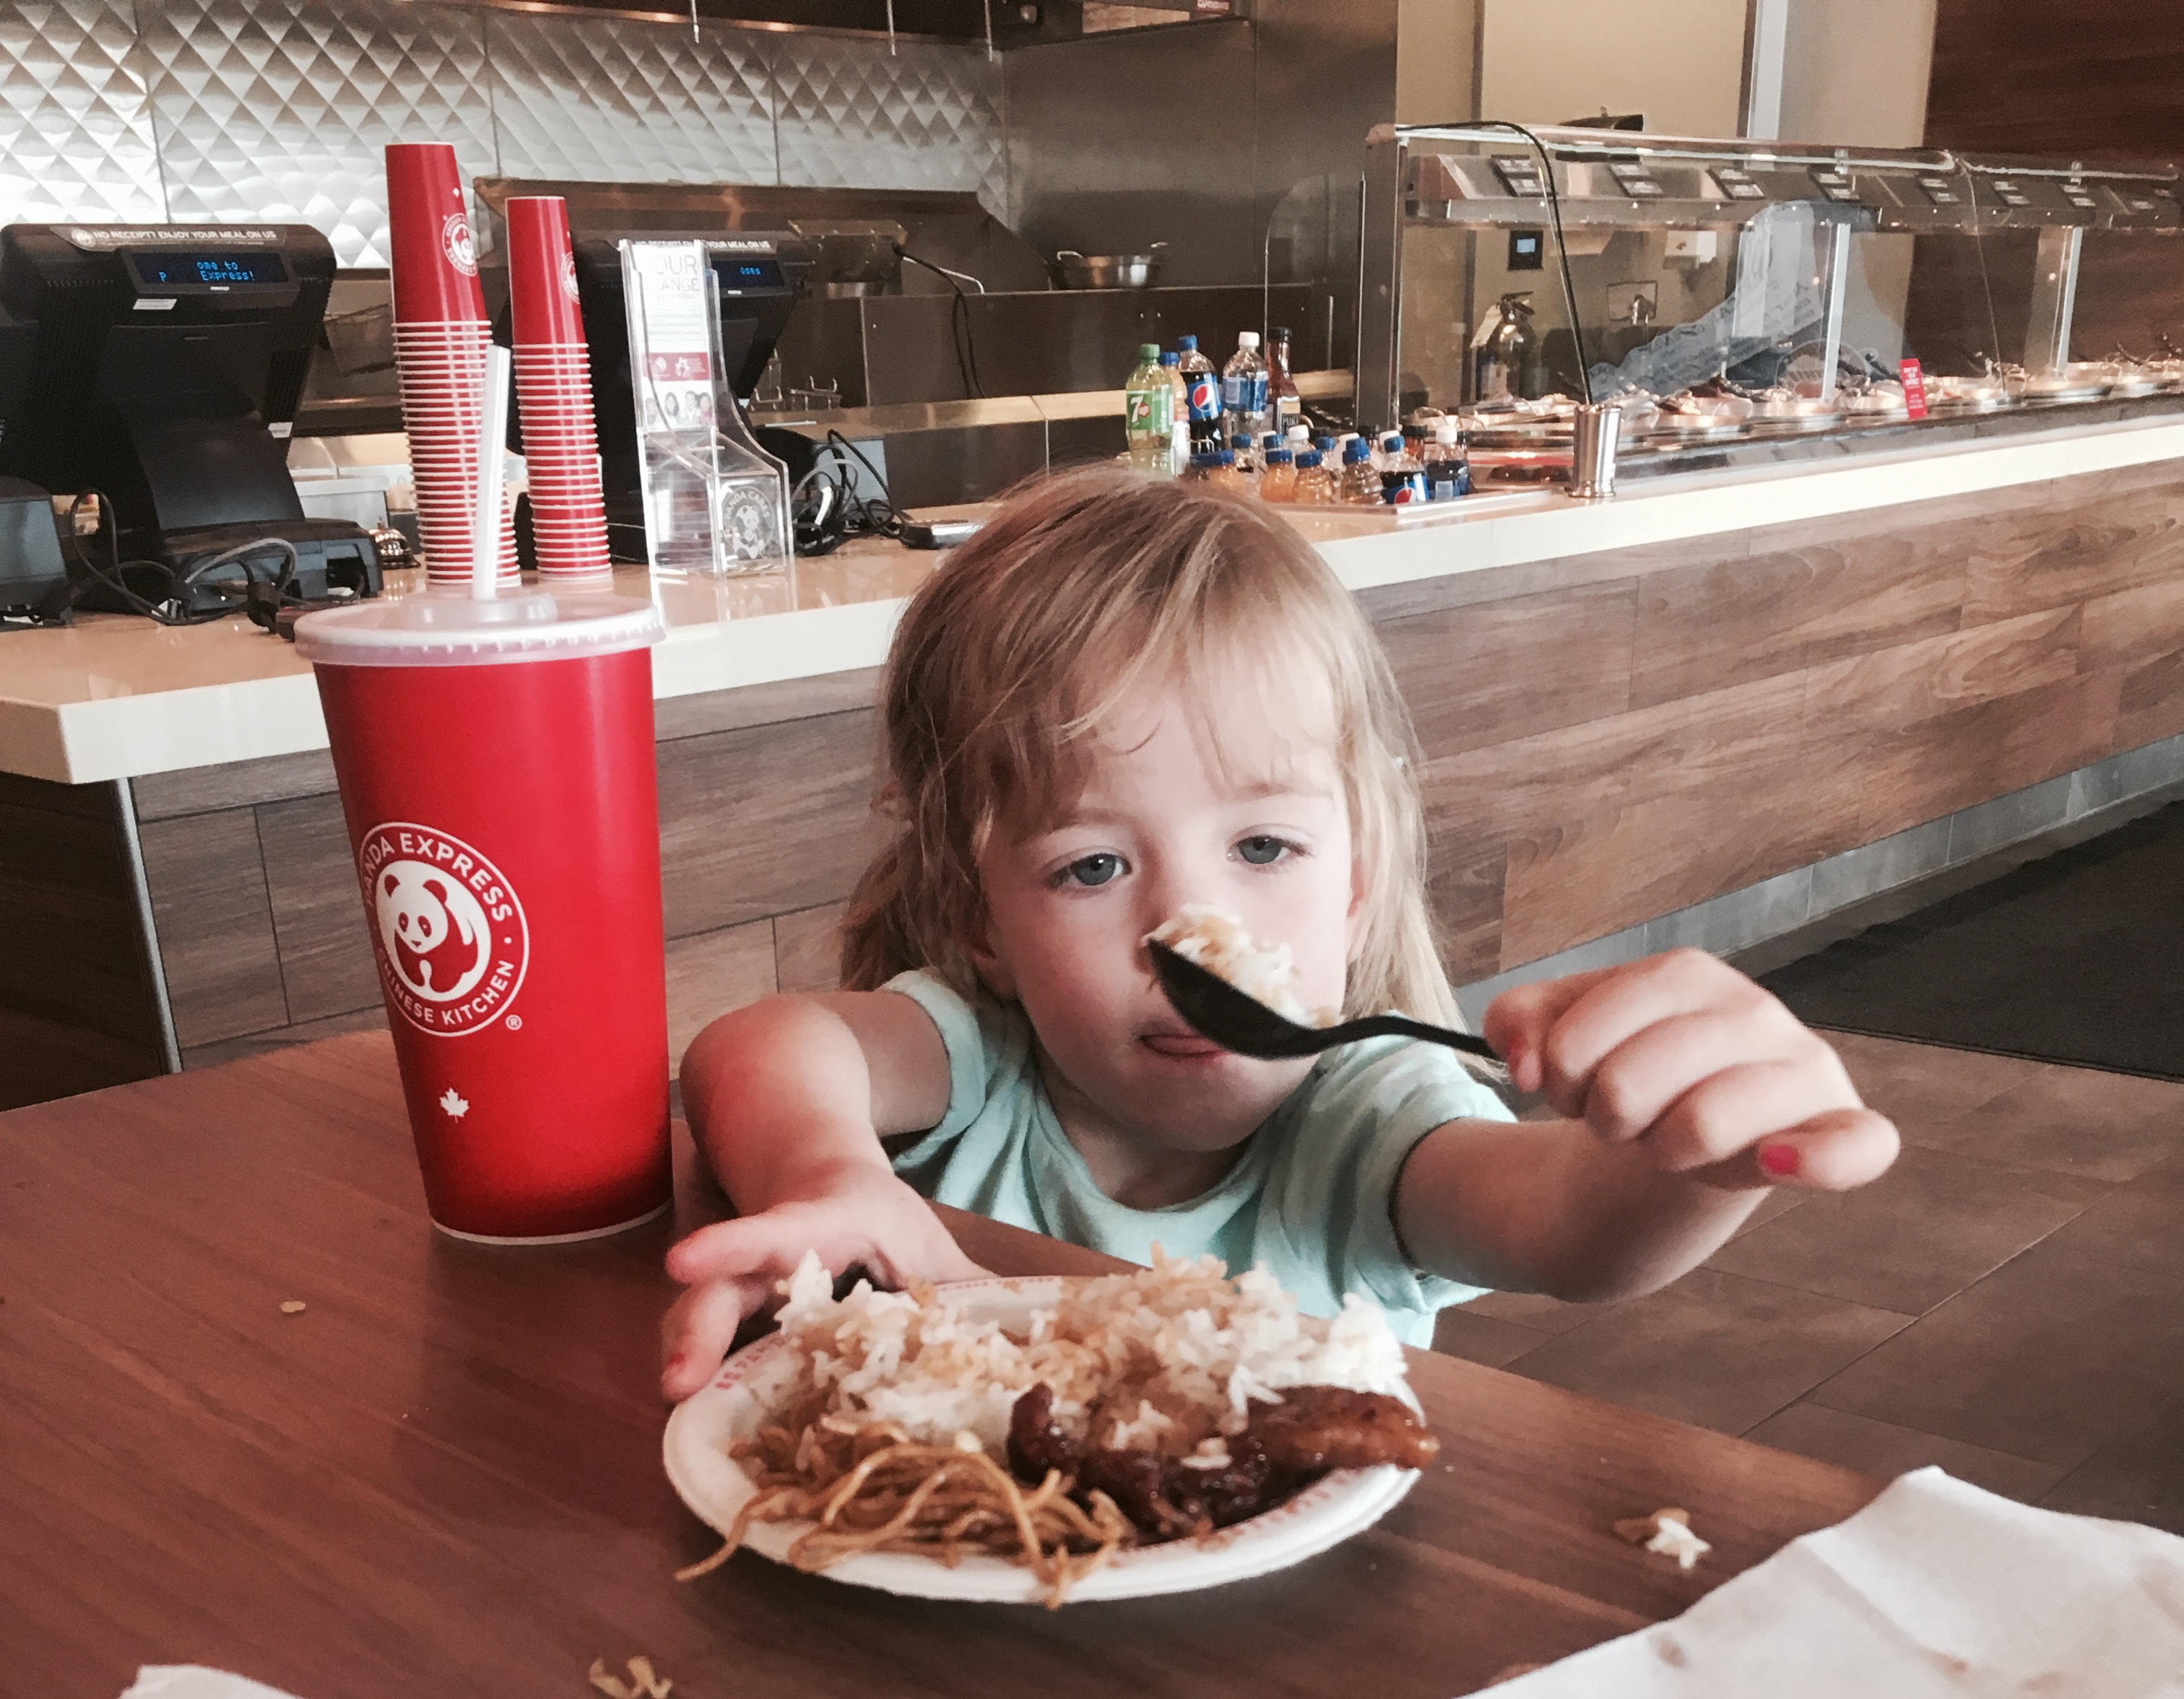 Family Friendly Eateries